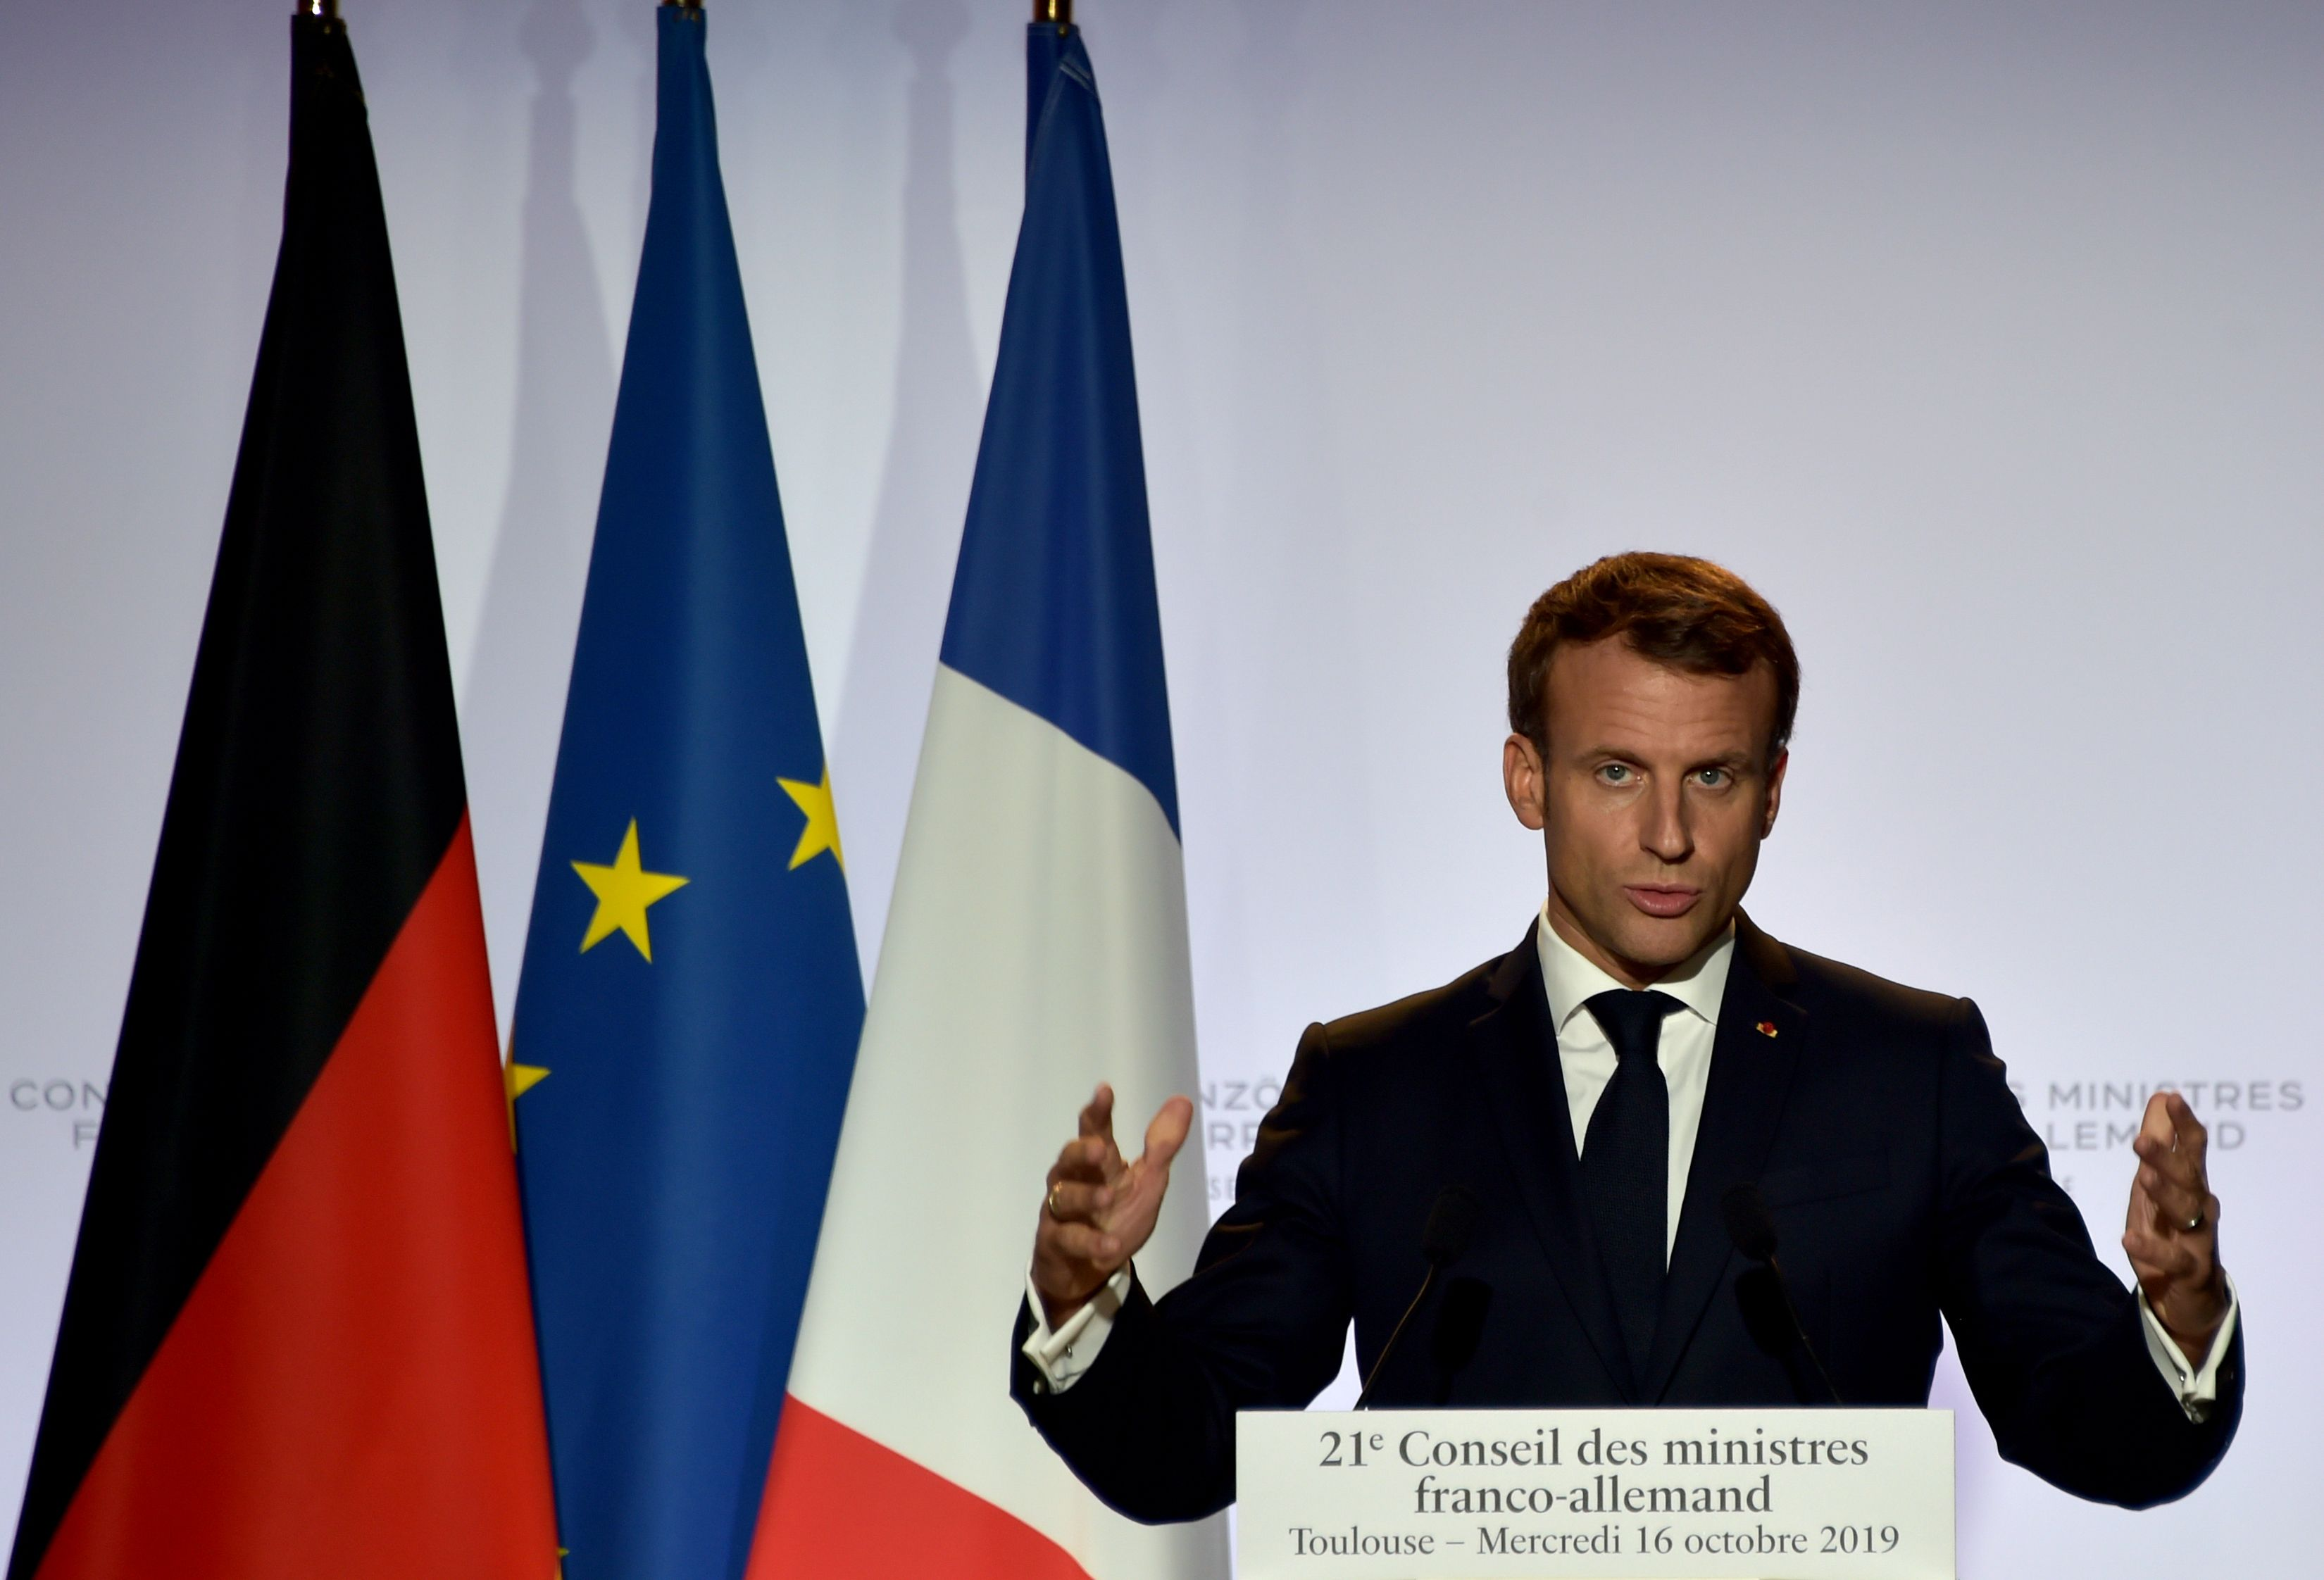 French President Emmanuel Macron during a press conference with German Chancellor Angela Merkel in Toulouse, southwestern France, on Thursday.